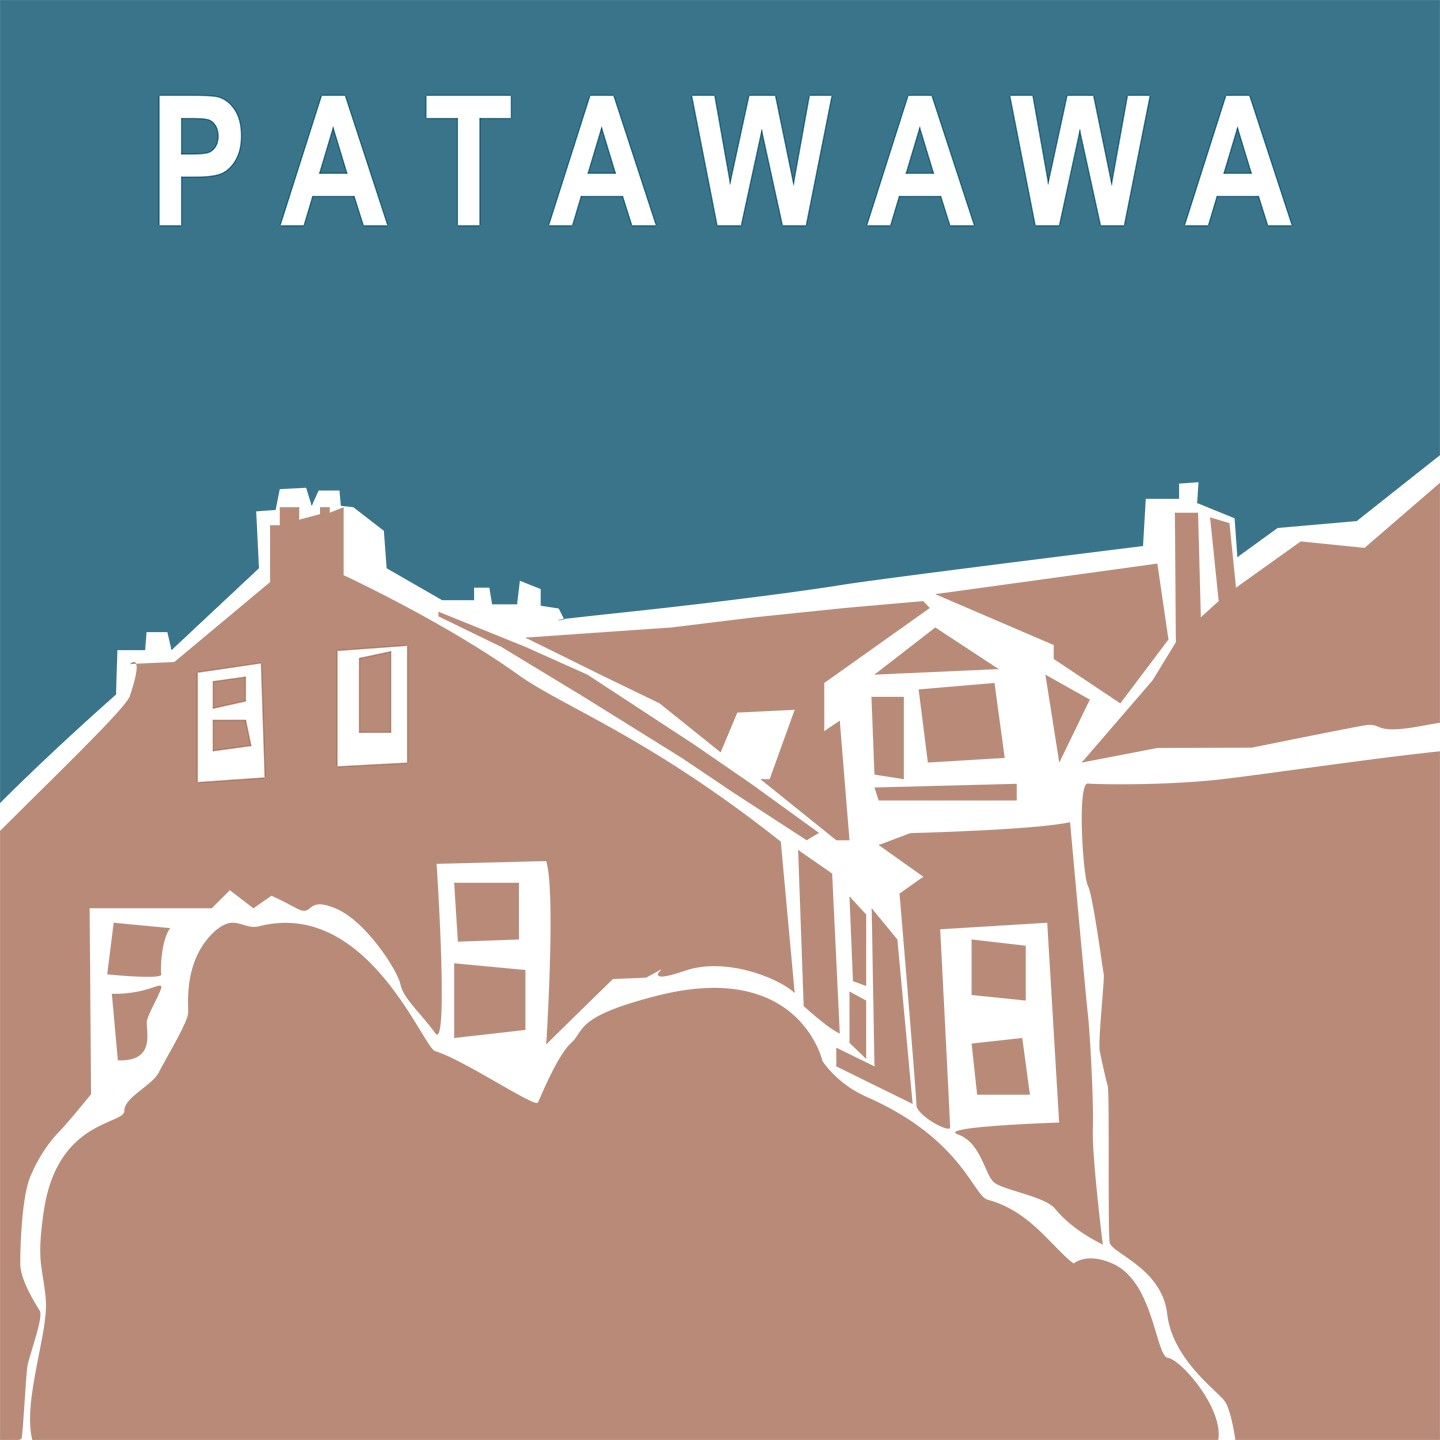 PATAWAWA - New Fight